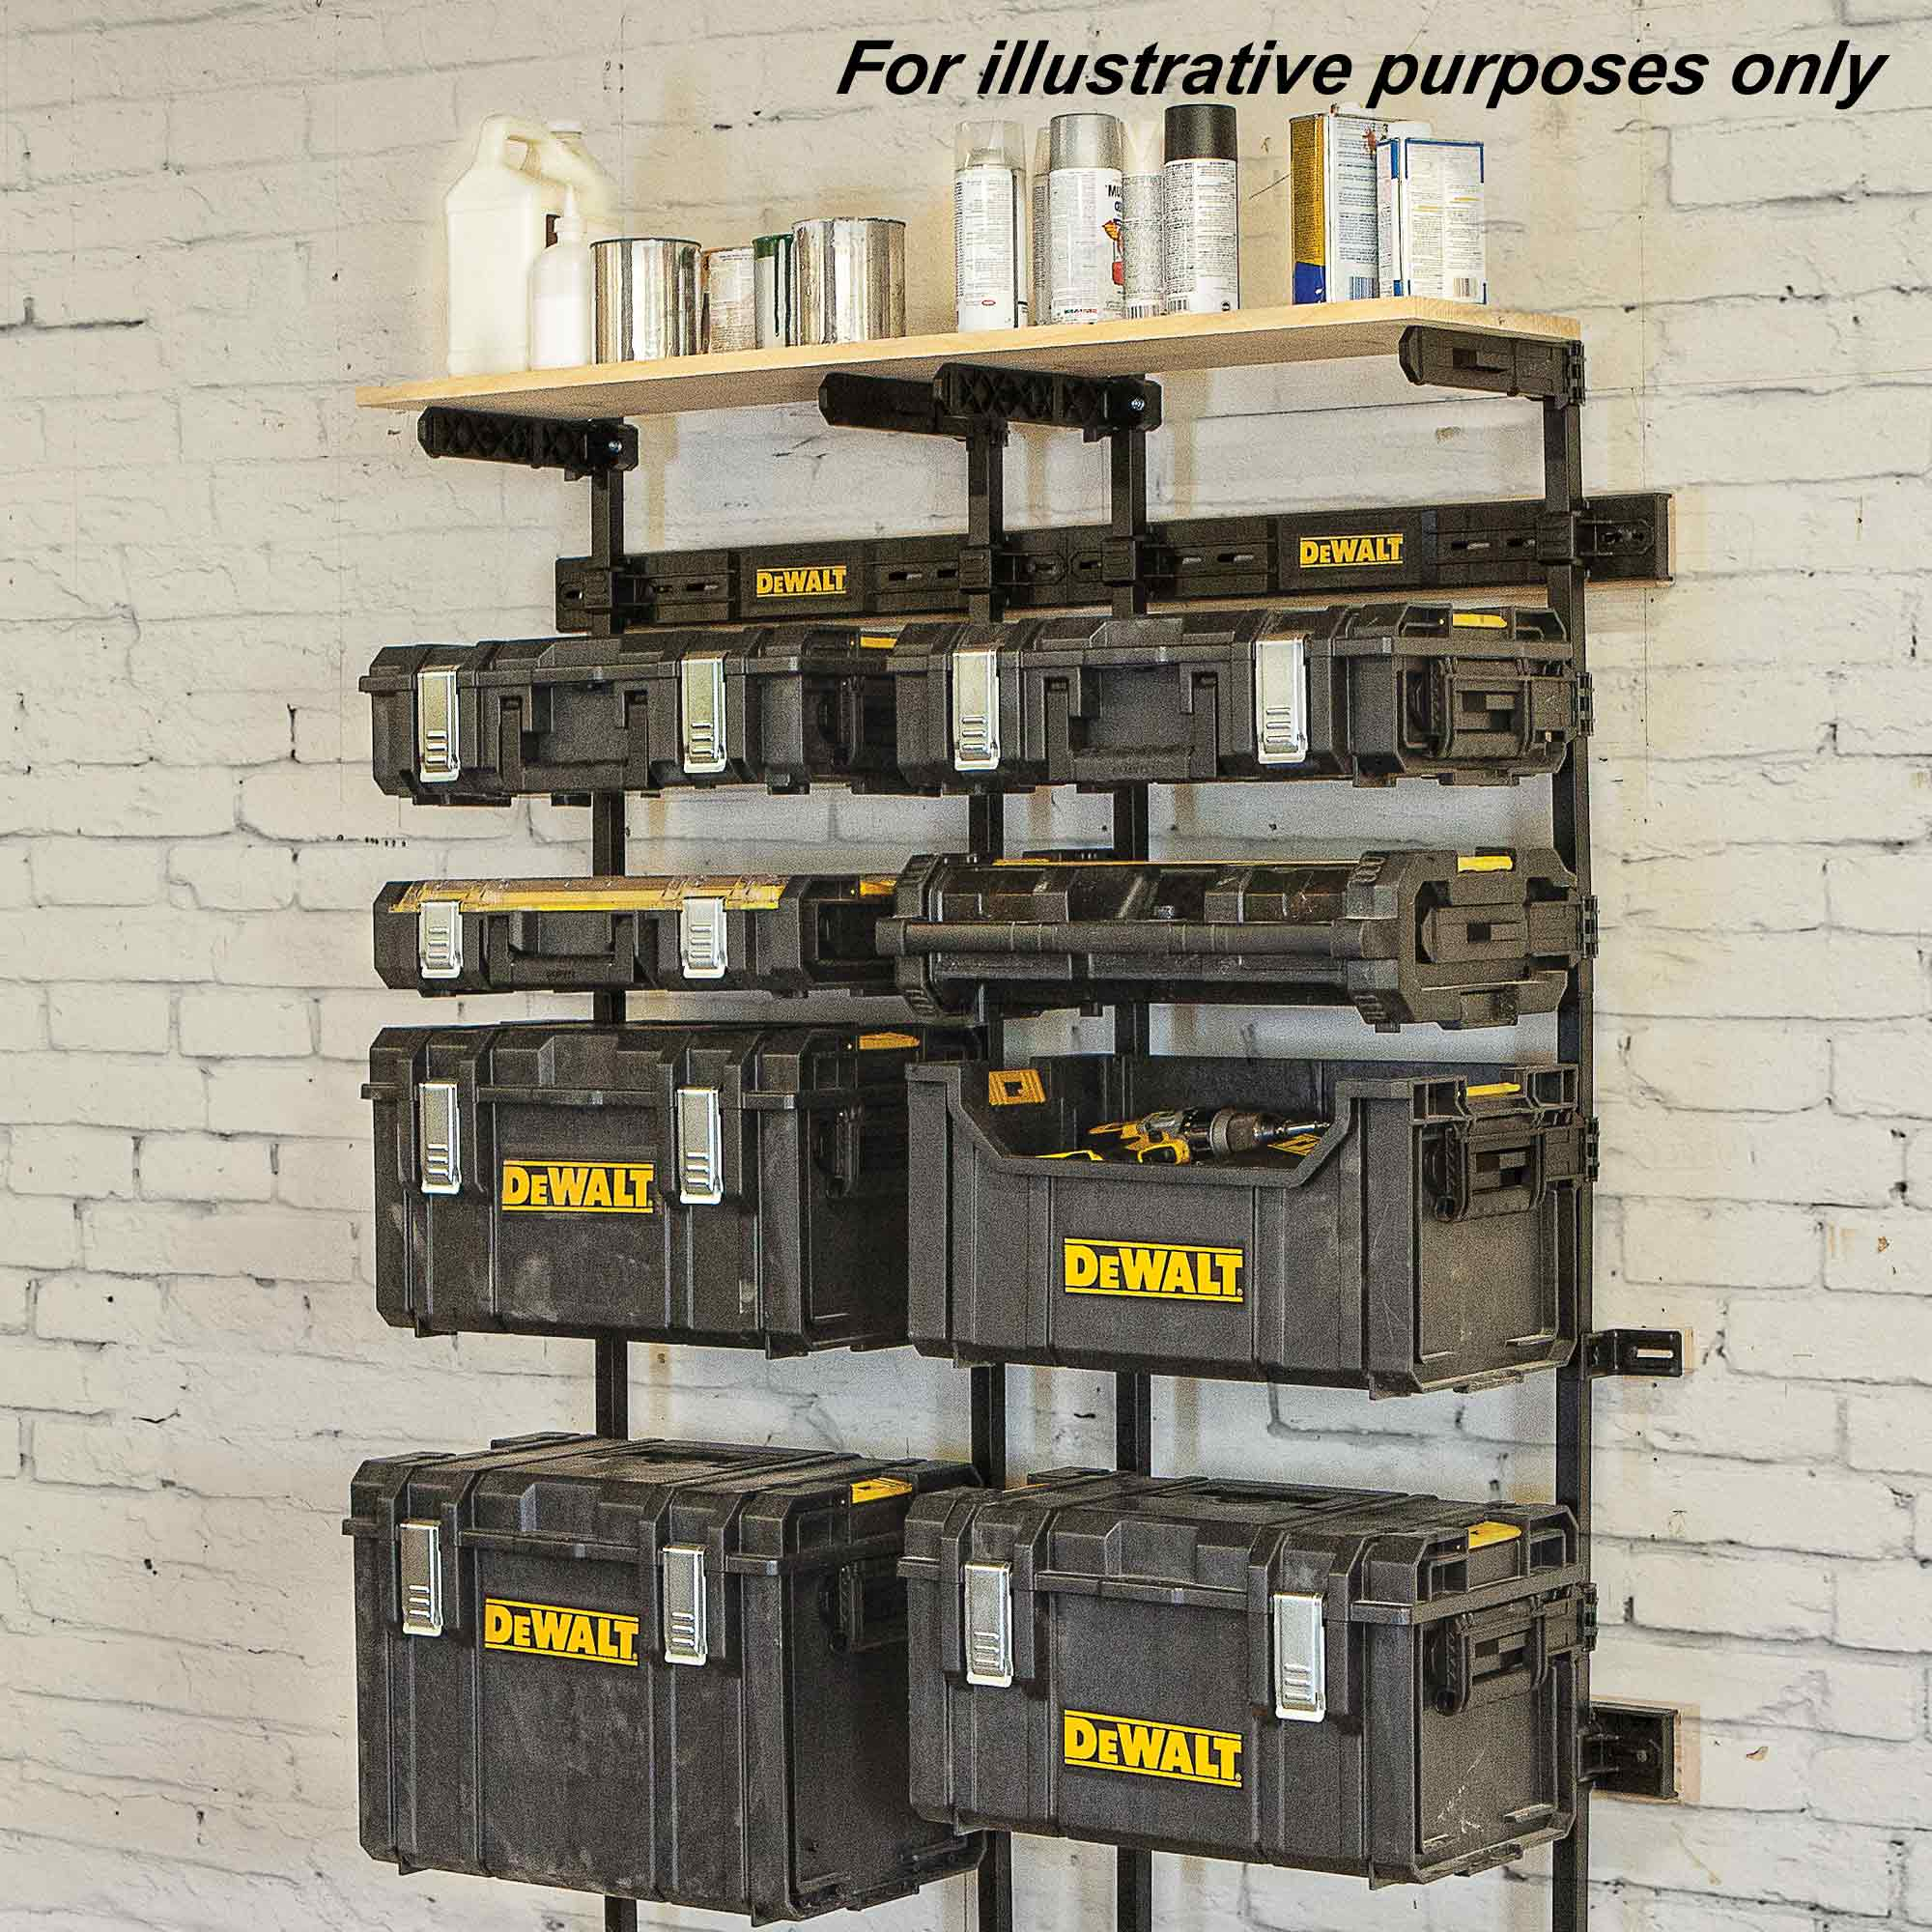 dewalt tough system wall mount. dewalt dwst1-75694 toughsystem workshop racking system_alt_image_3 tough system wall mount r